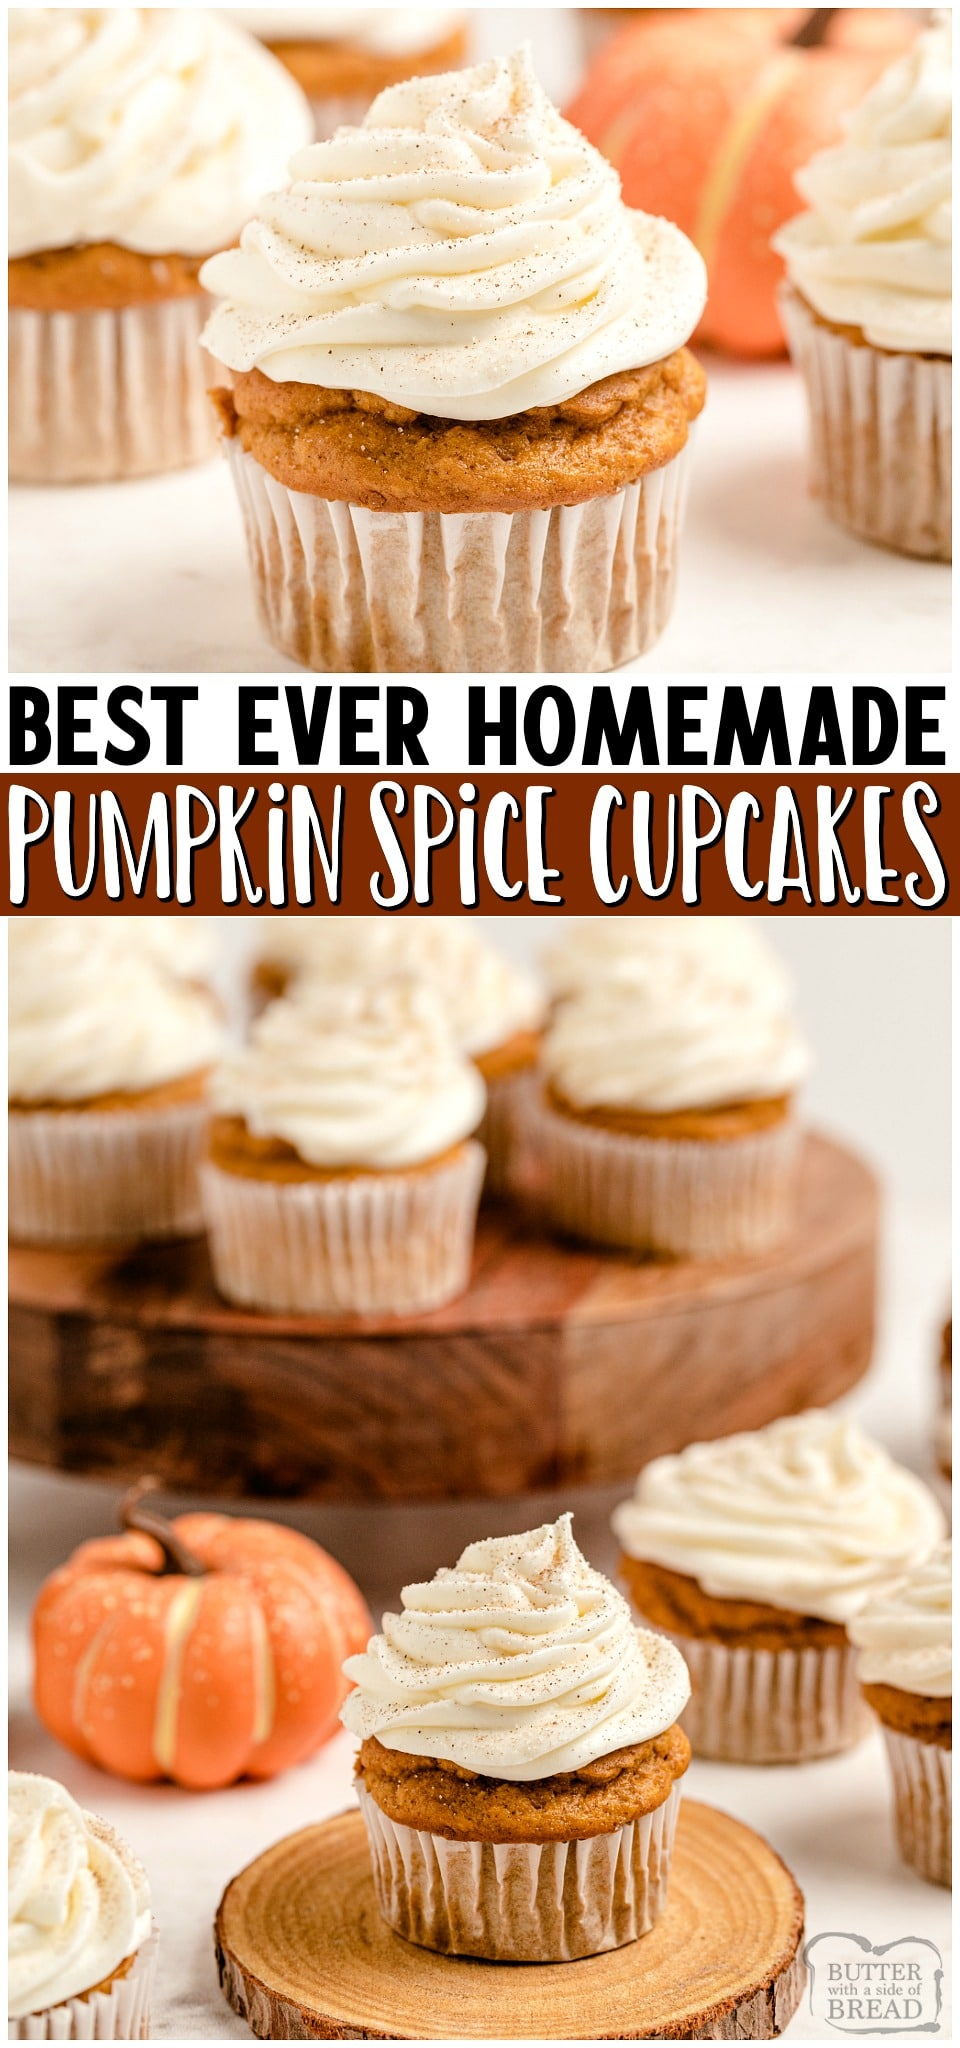 Pumpkin Spice Cupcakes with Cream Cheese Frosting are the perfect little treats for celebrating Fall! Easy recipe that starts with yellow cake mix and yields soft, moist perfectly spiced pumpkin cupcakes!#cupcakes #pumpkin #pumpkinspice #psl #baking #dessert #easyrecipe from BUTTER WITH A SIDE OF BREAD